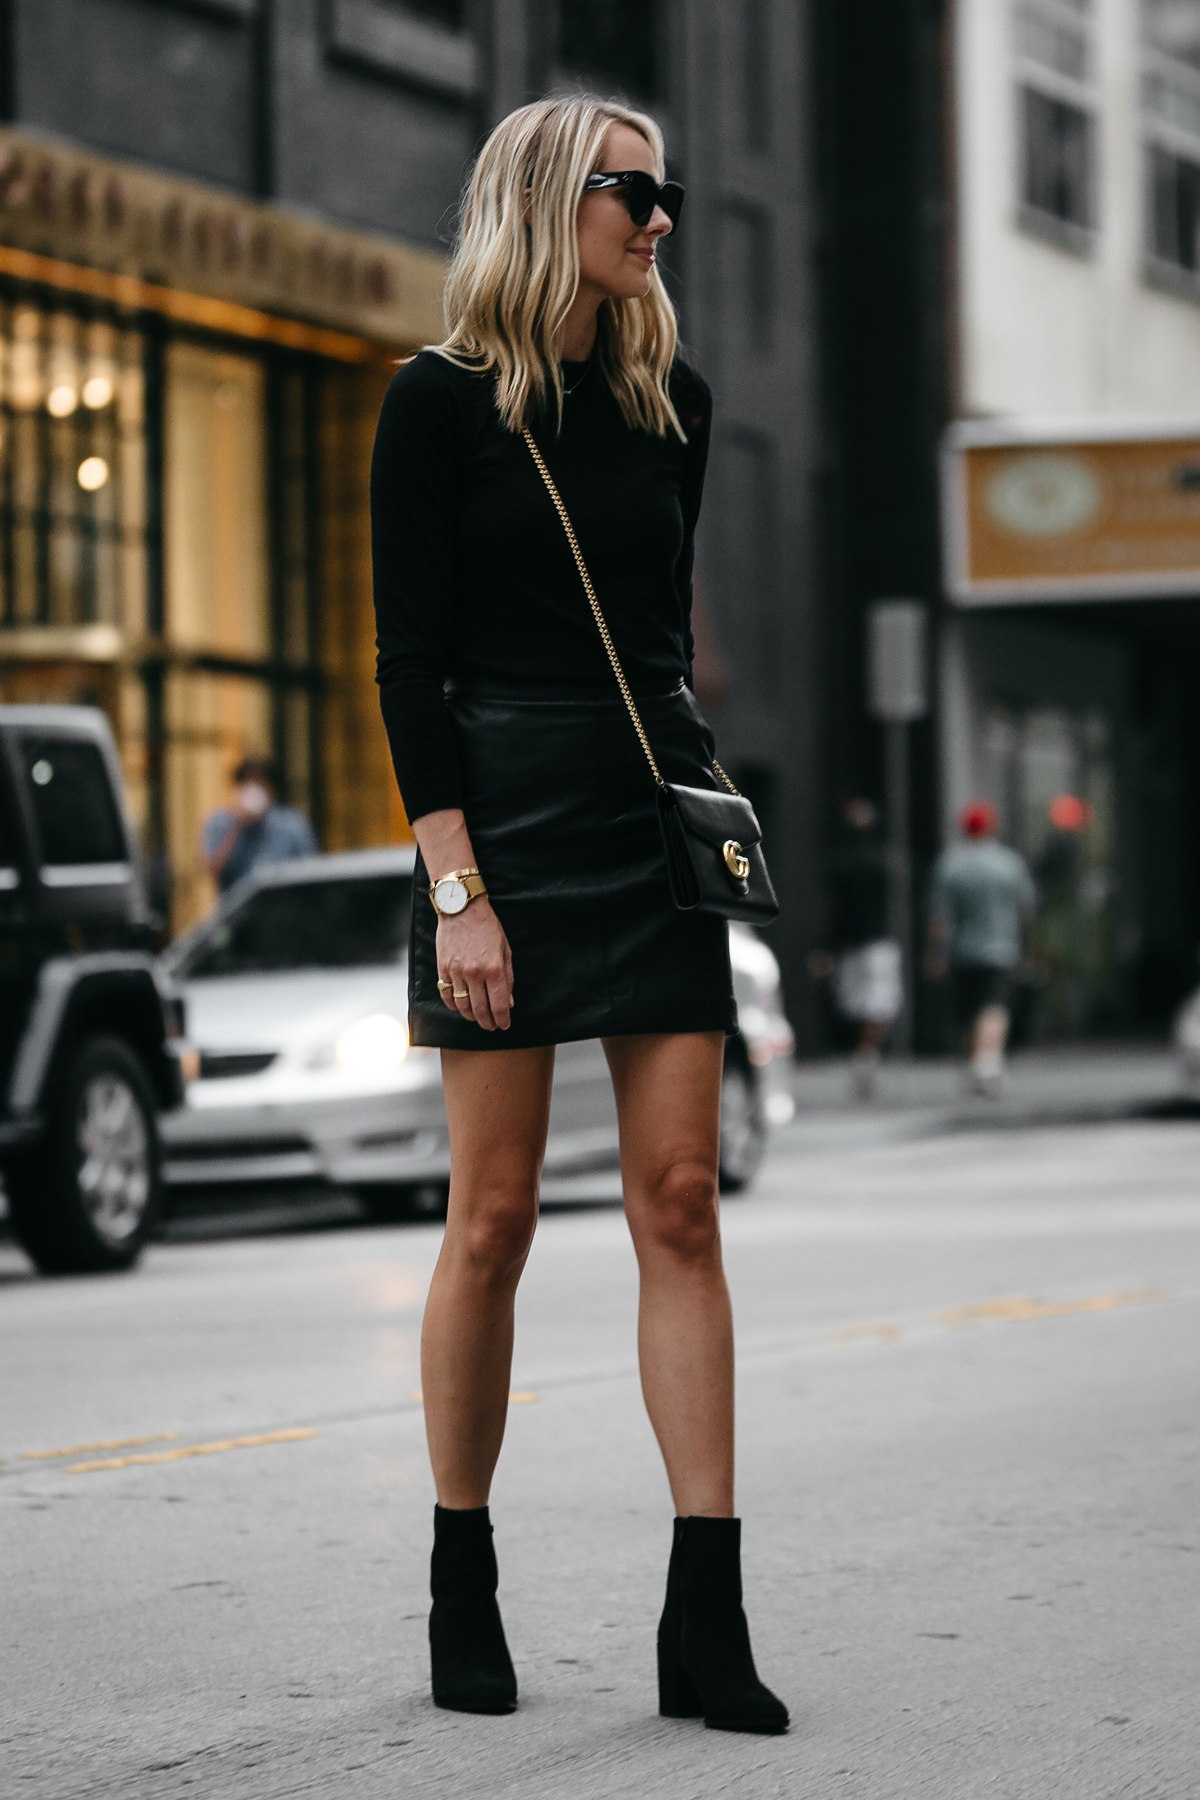 Blonde Woman Wearing Club Monaco Black Sweater Topshop Black Leather Mini Skirt Outfit Gucci Marmont Handbag Stuart Weitzman Black Booties Fashion Jackson Dallas Blogger Fashion Blogger Street Style